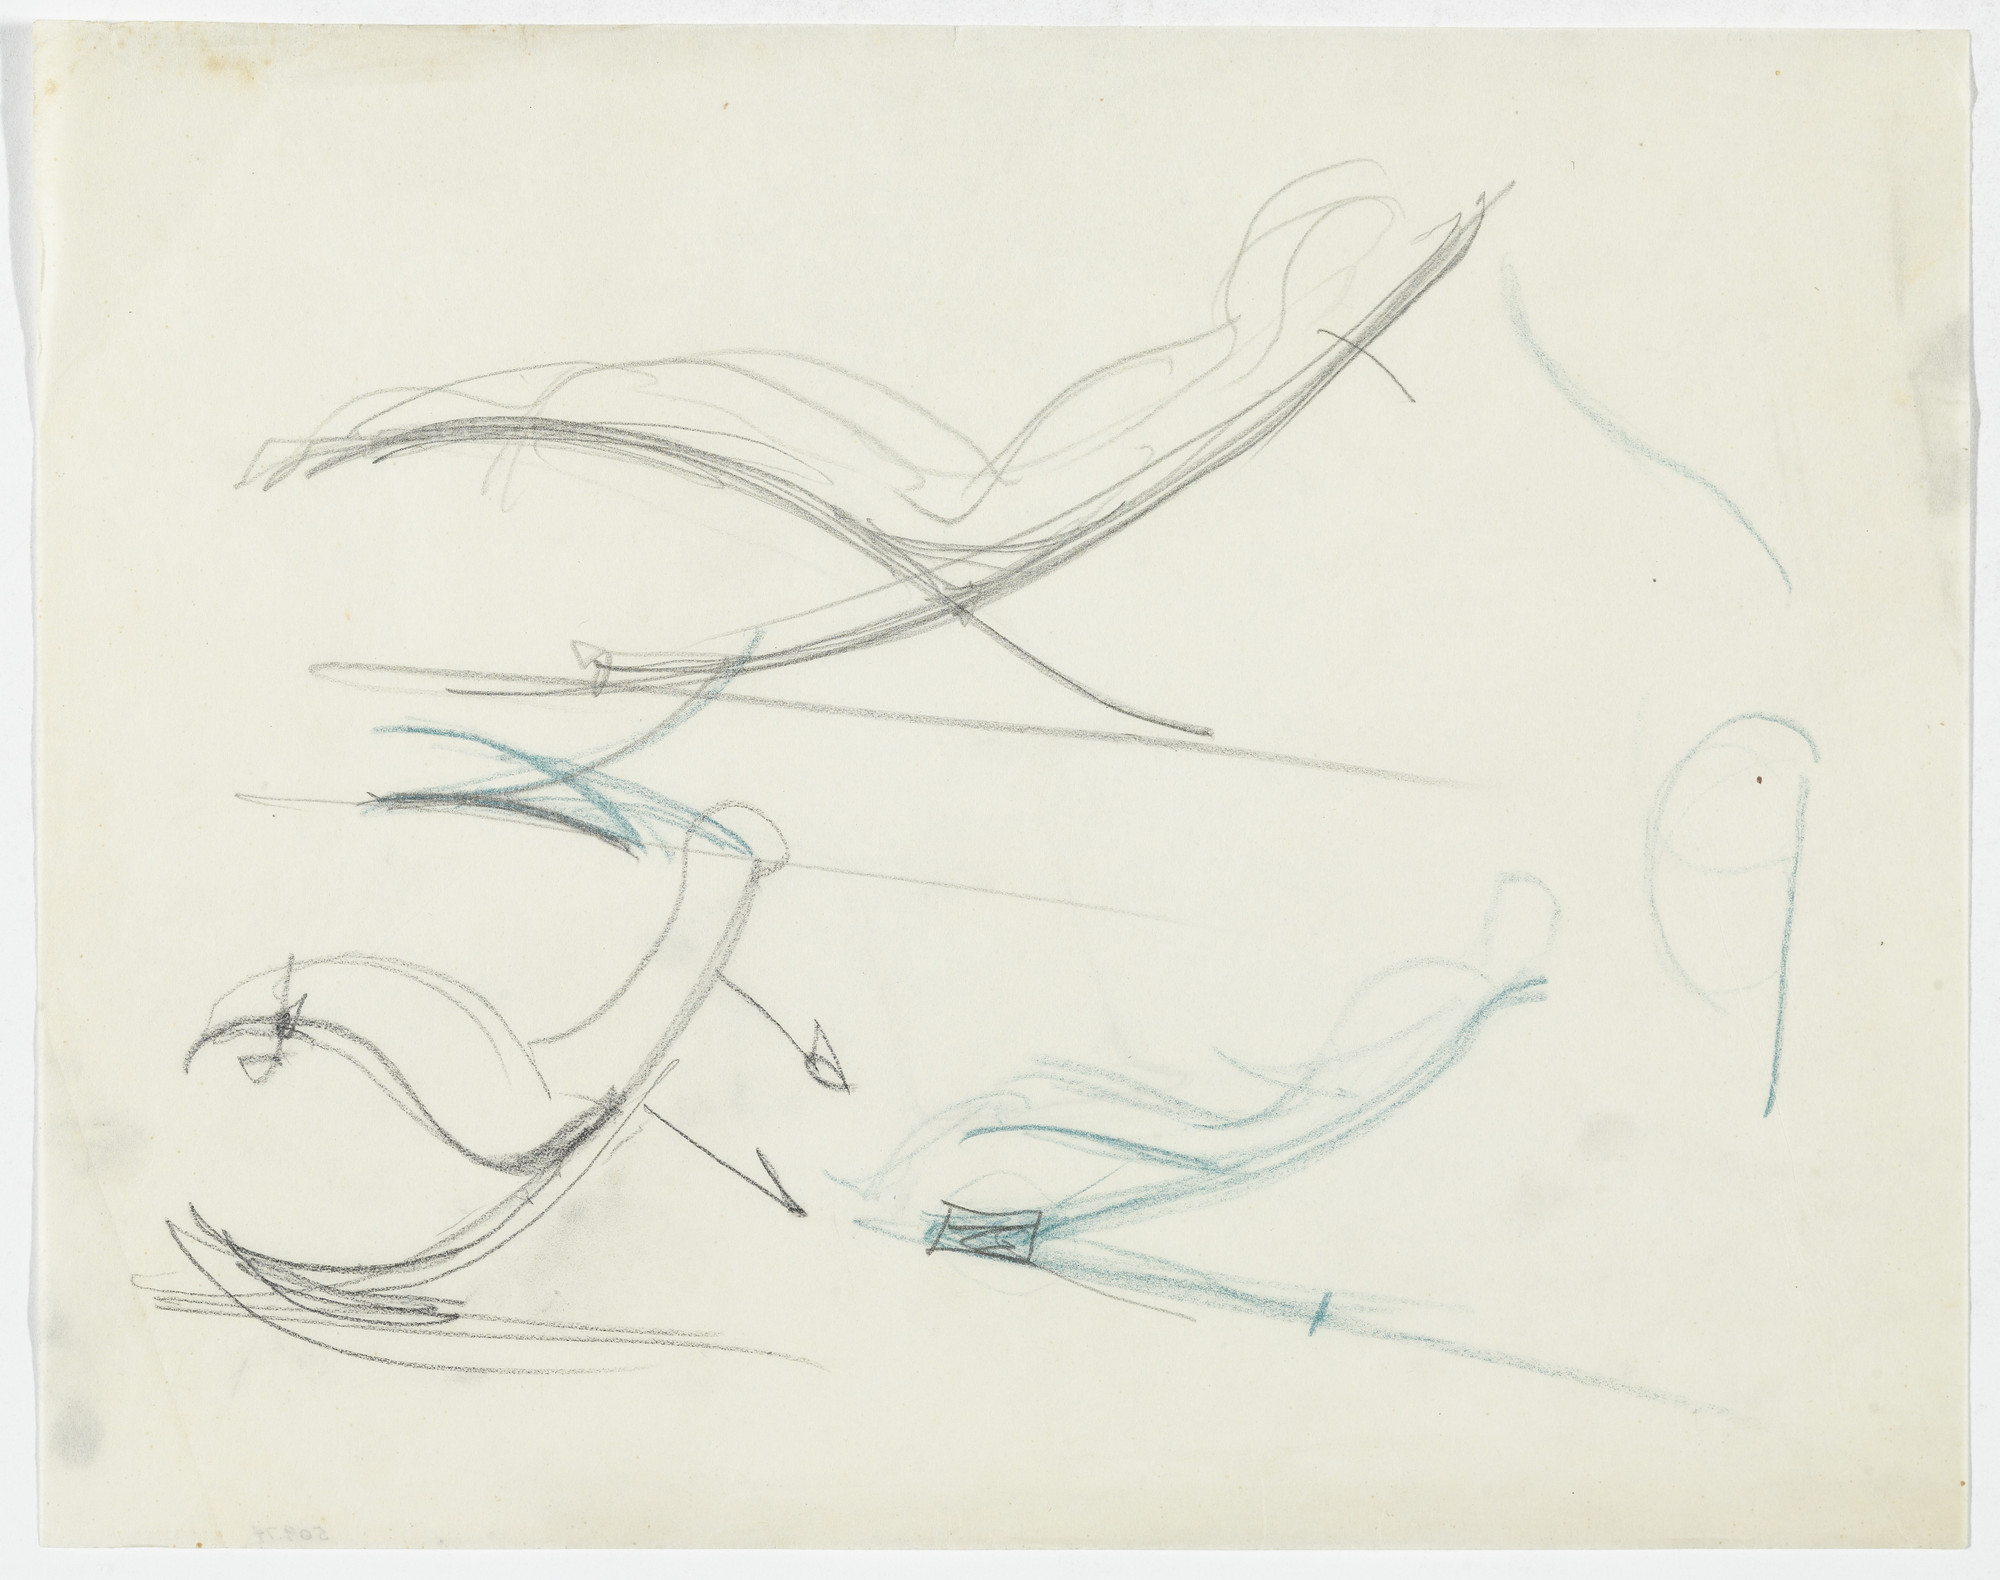 Ludwig Mies van der Rohe. Reclining Chair without Arms (Four elevation sketches). 1934